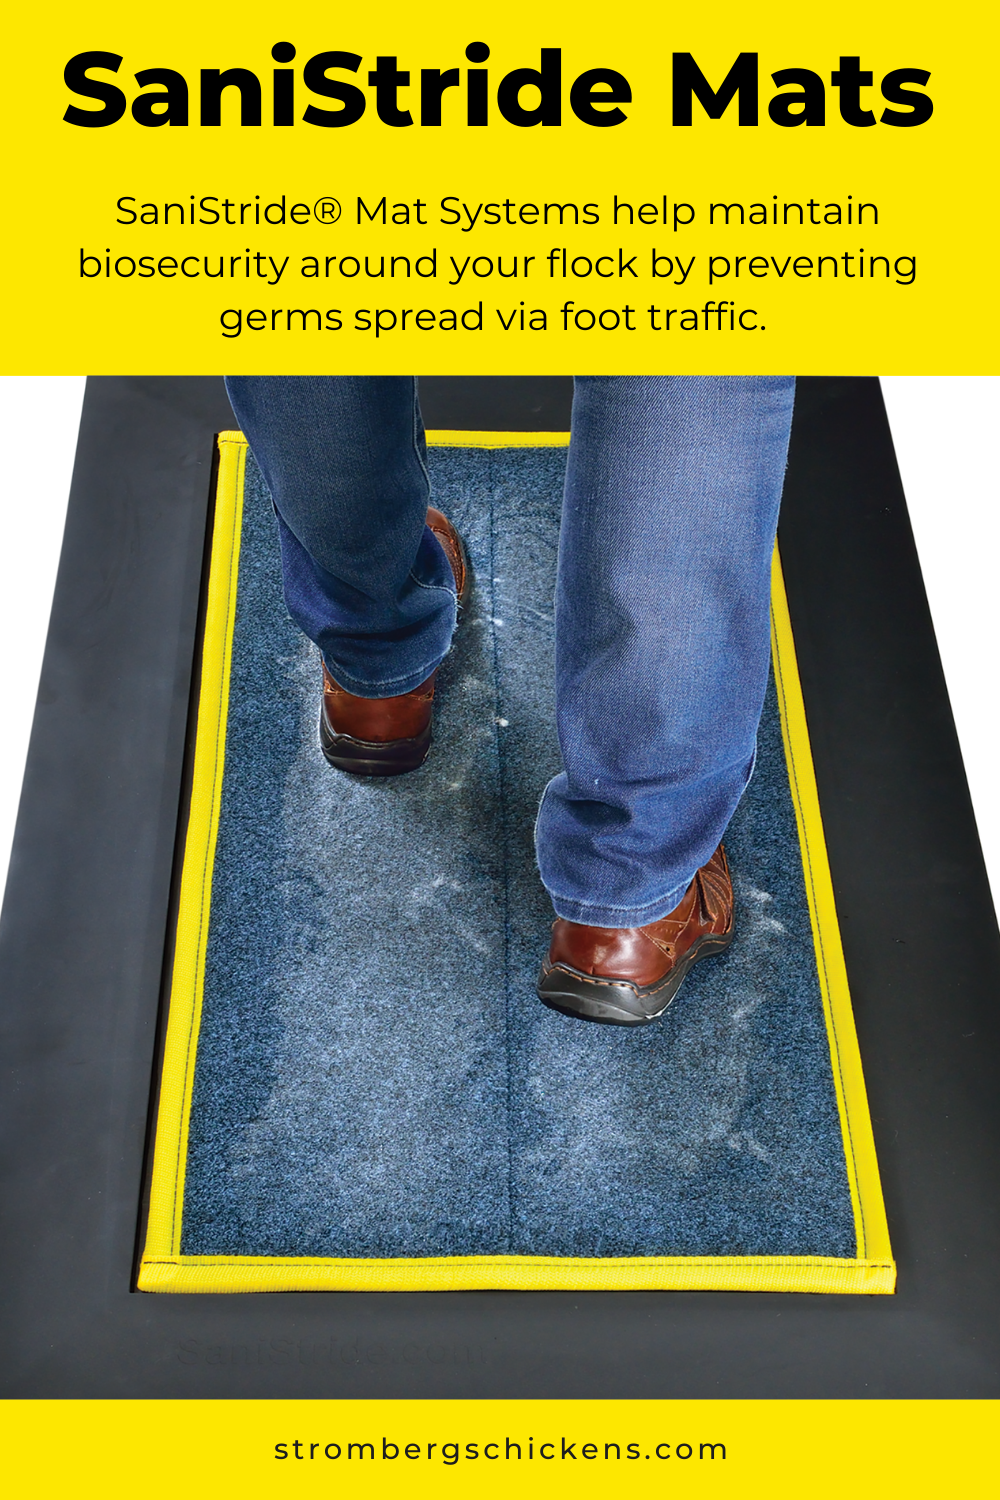 SaniStride® mat systems prevent spreading germs among your flock. Sold at Stromberg's.